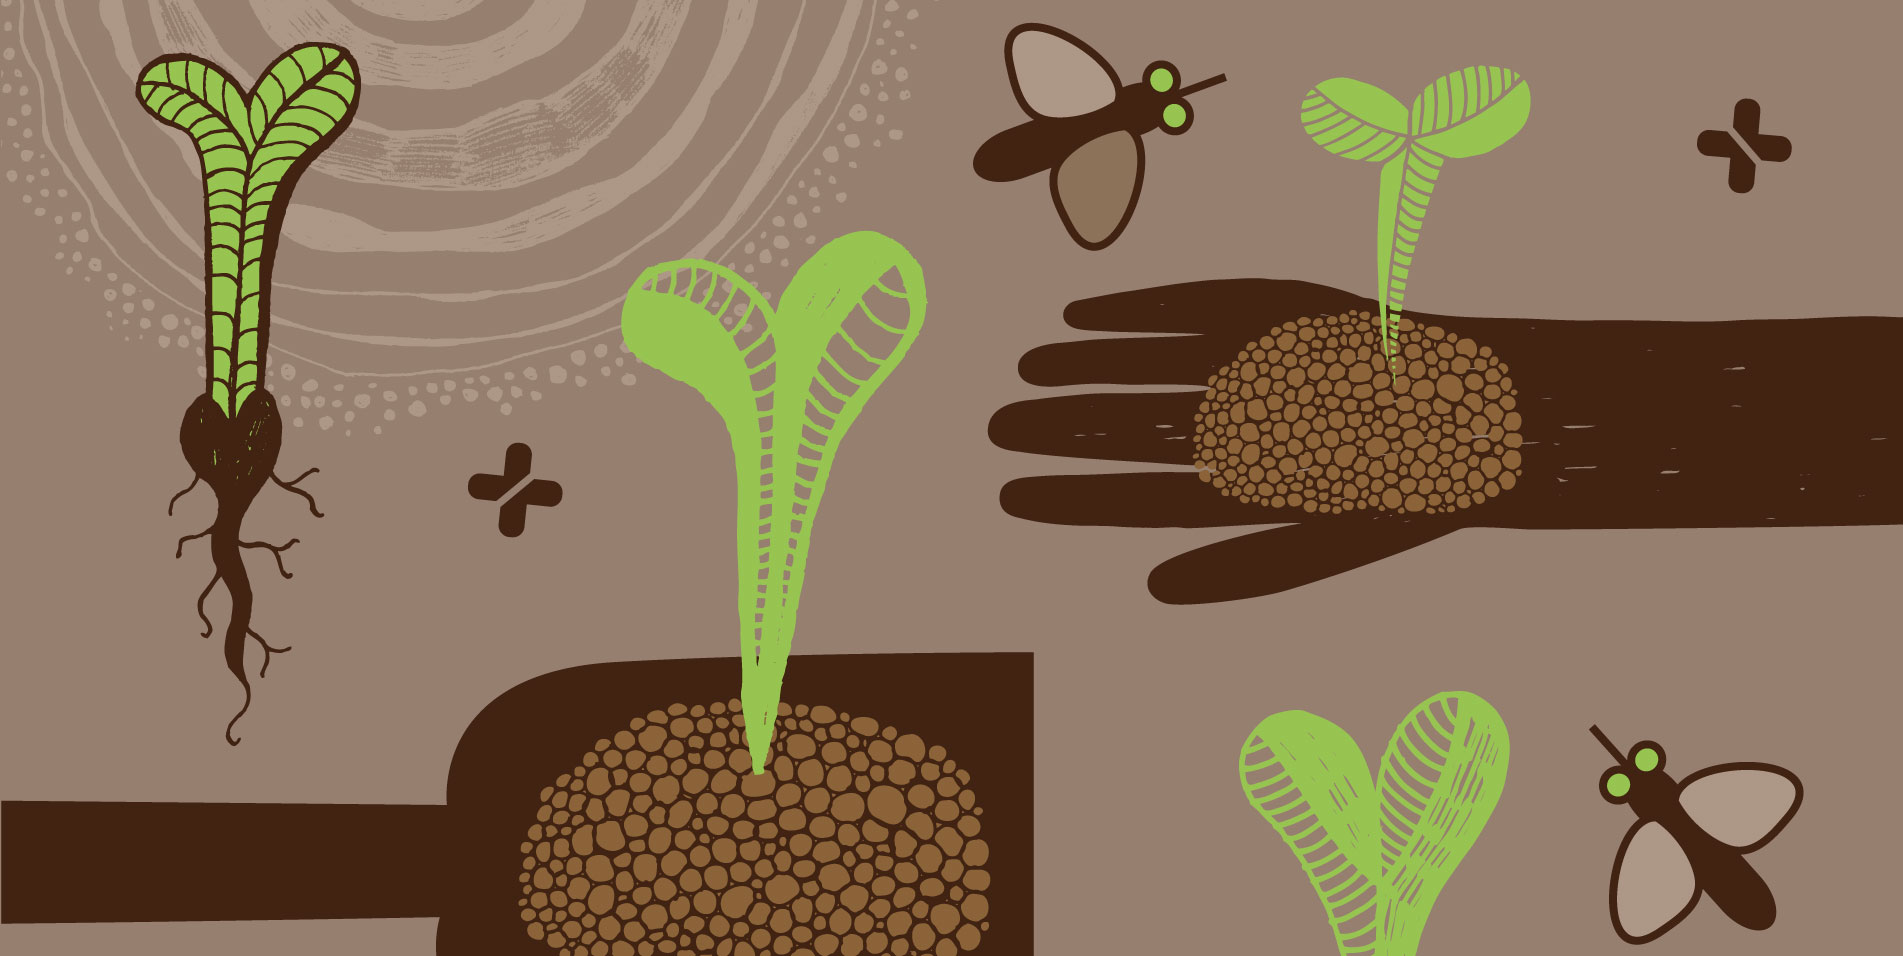 Illustration of seedlings, soil, insects and sun